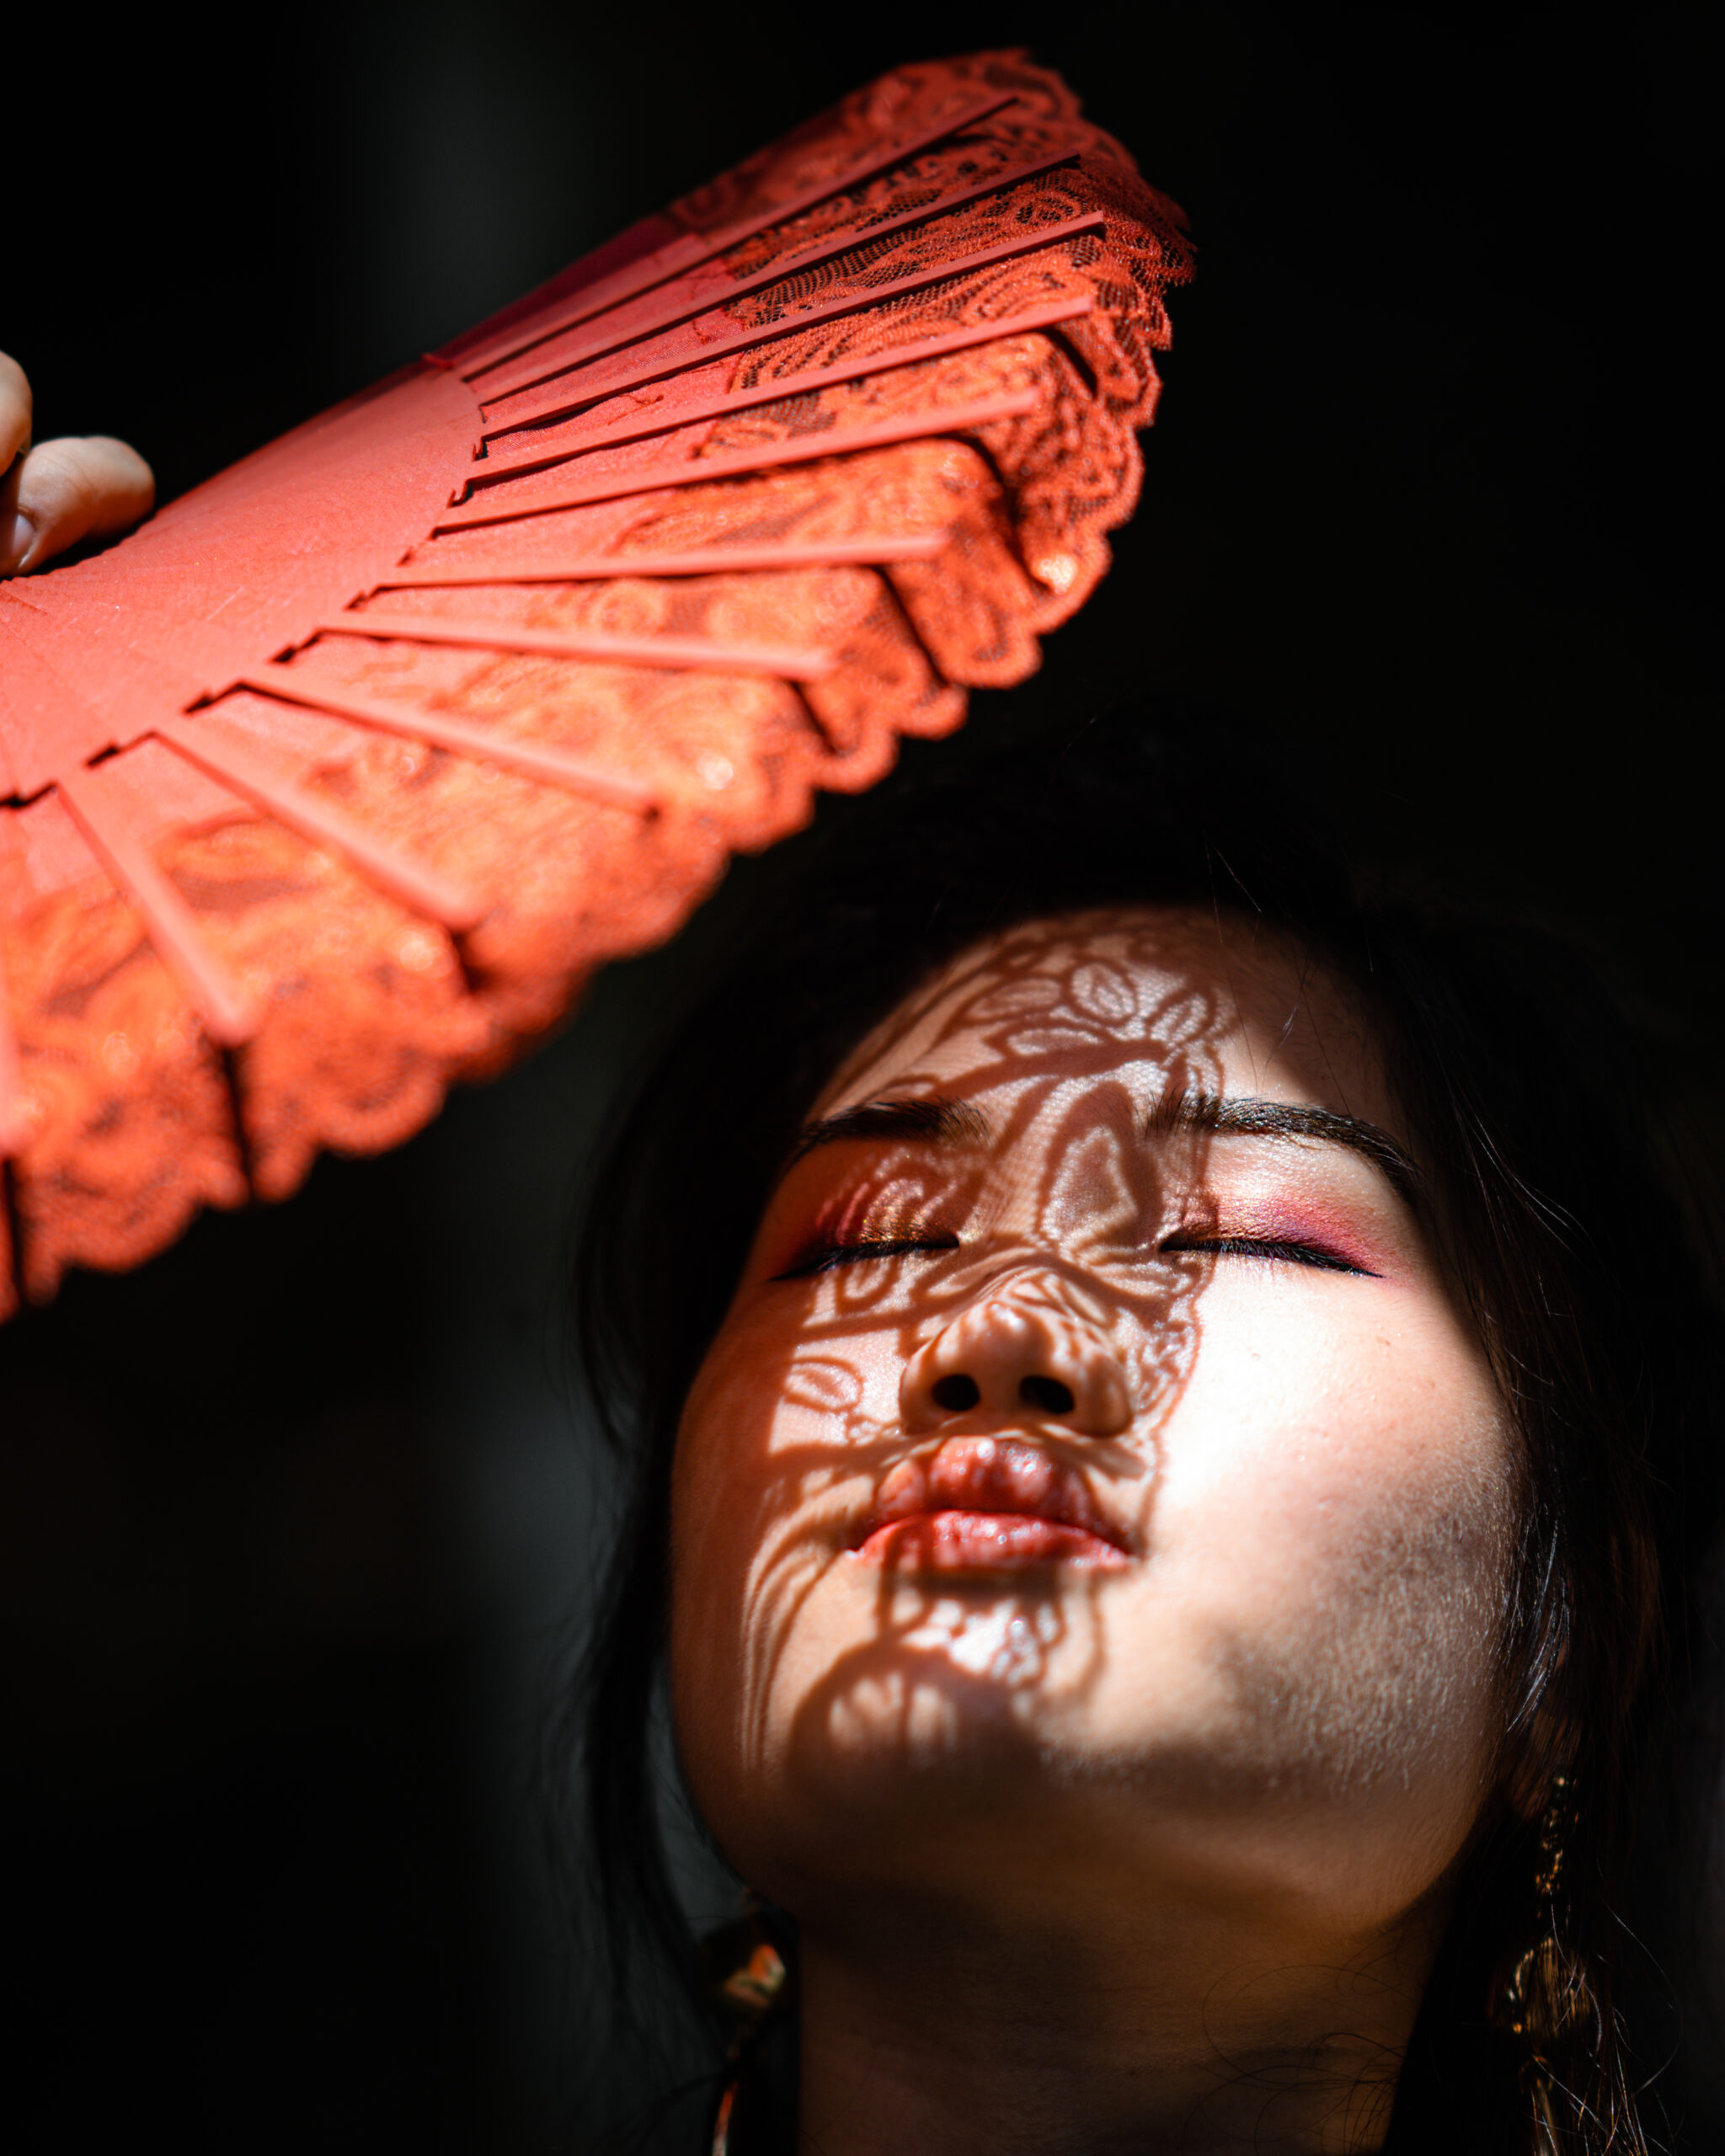 photo-of-woman-cover-her-face-with-hand-fan-2748126